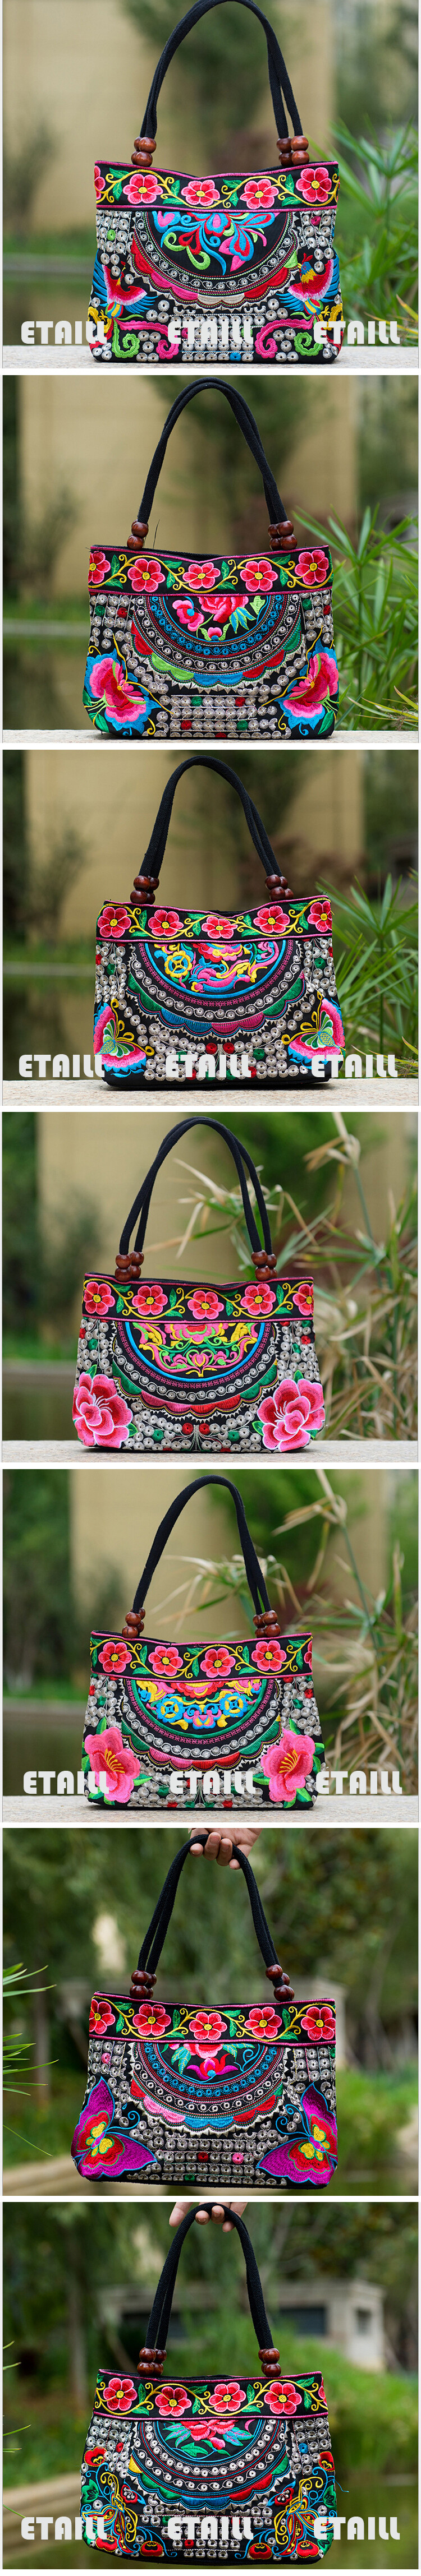 Embroidered shoulder handbag